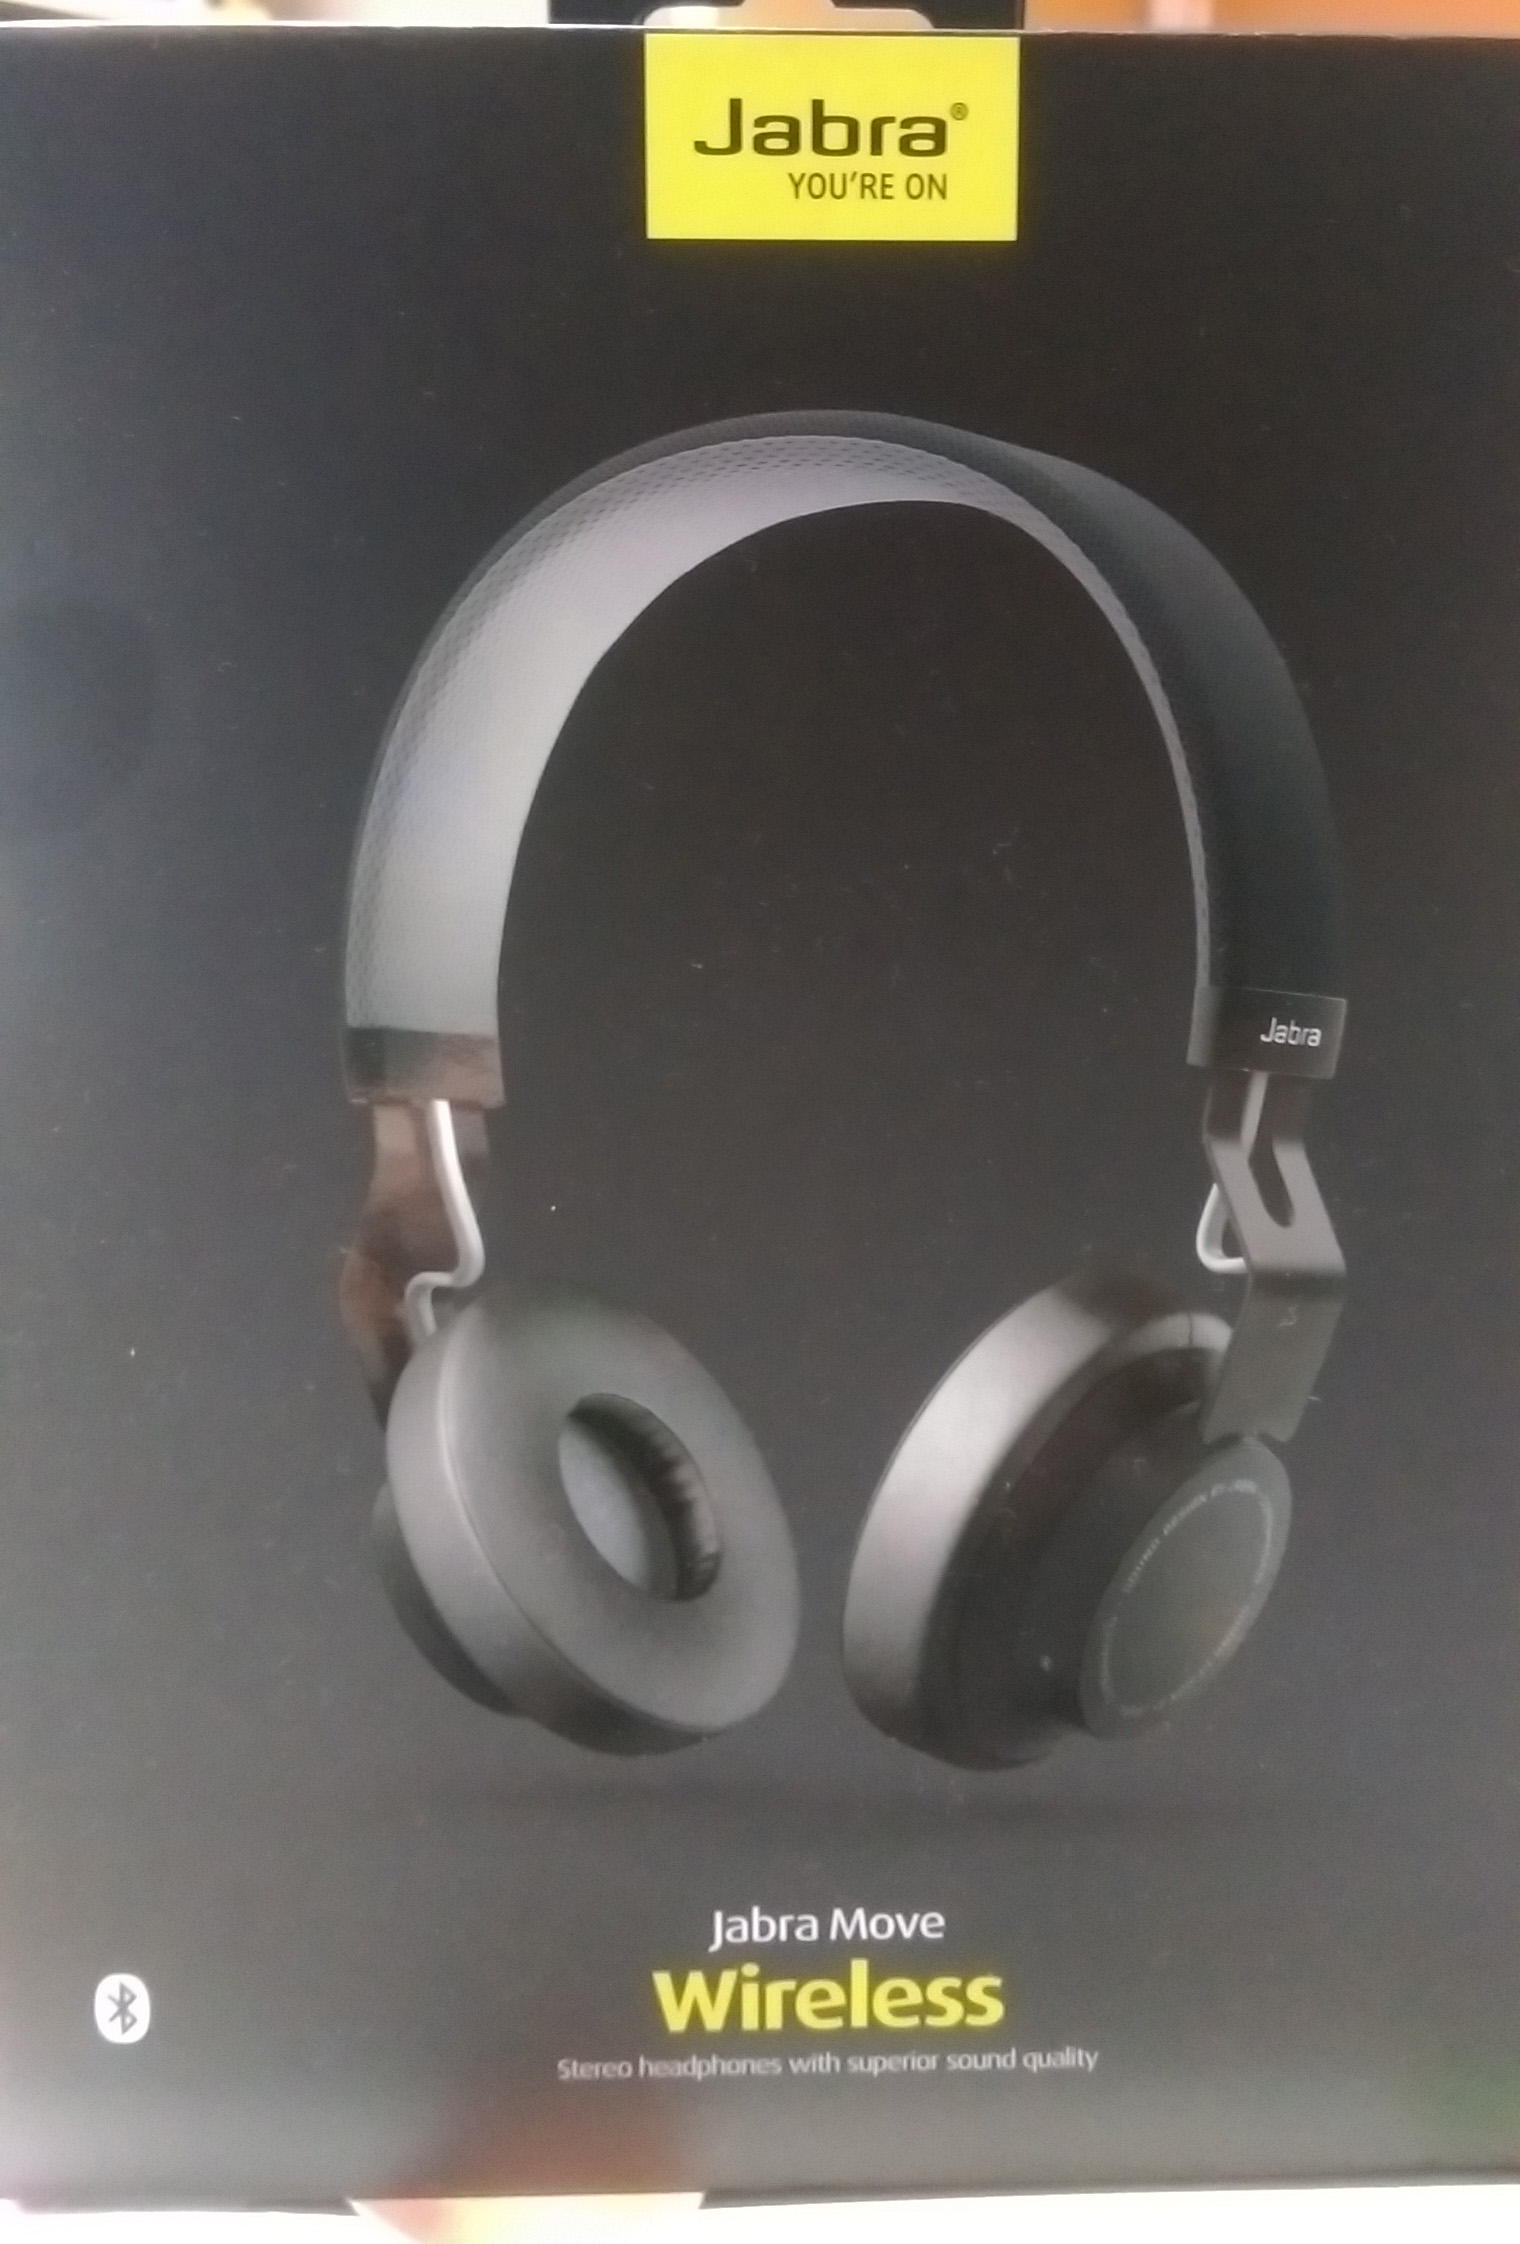 Jabra Move Wireless Wired Headphone Review Pocketables